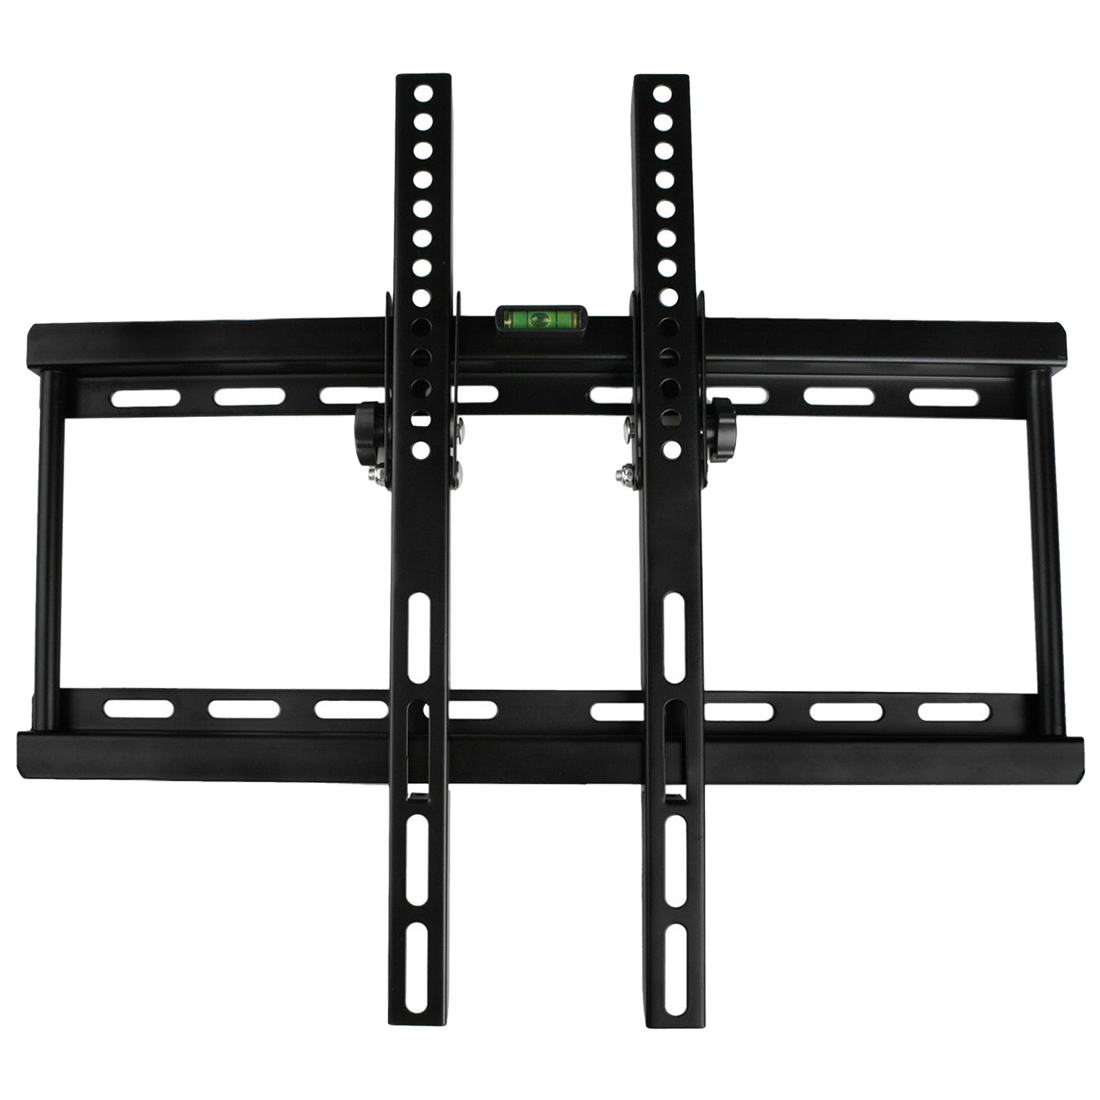 Bathroom Shelves Bathroom Hardware Cooperative Ksol Flat Slim Tv Wall Mount Bracket 23 28 30 32 40 42 48 50 55 Inch Led Lcd Plasma Beneficial To Essential Medulla